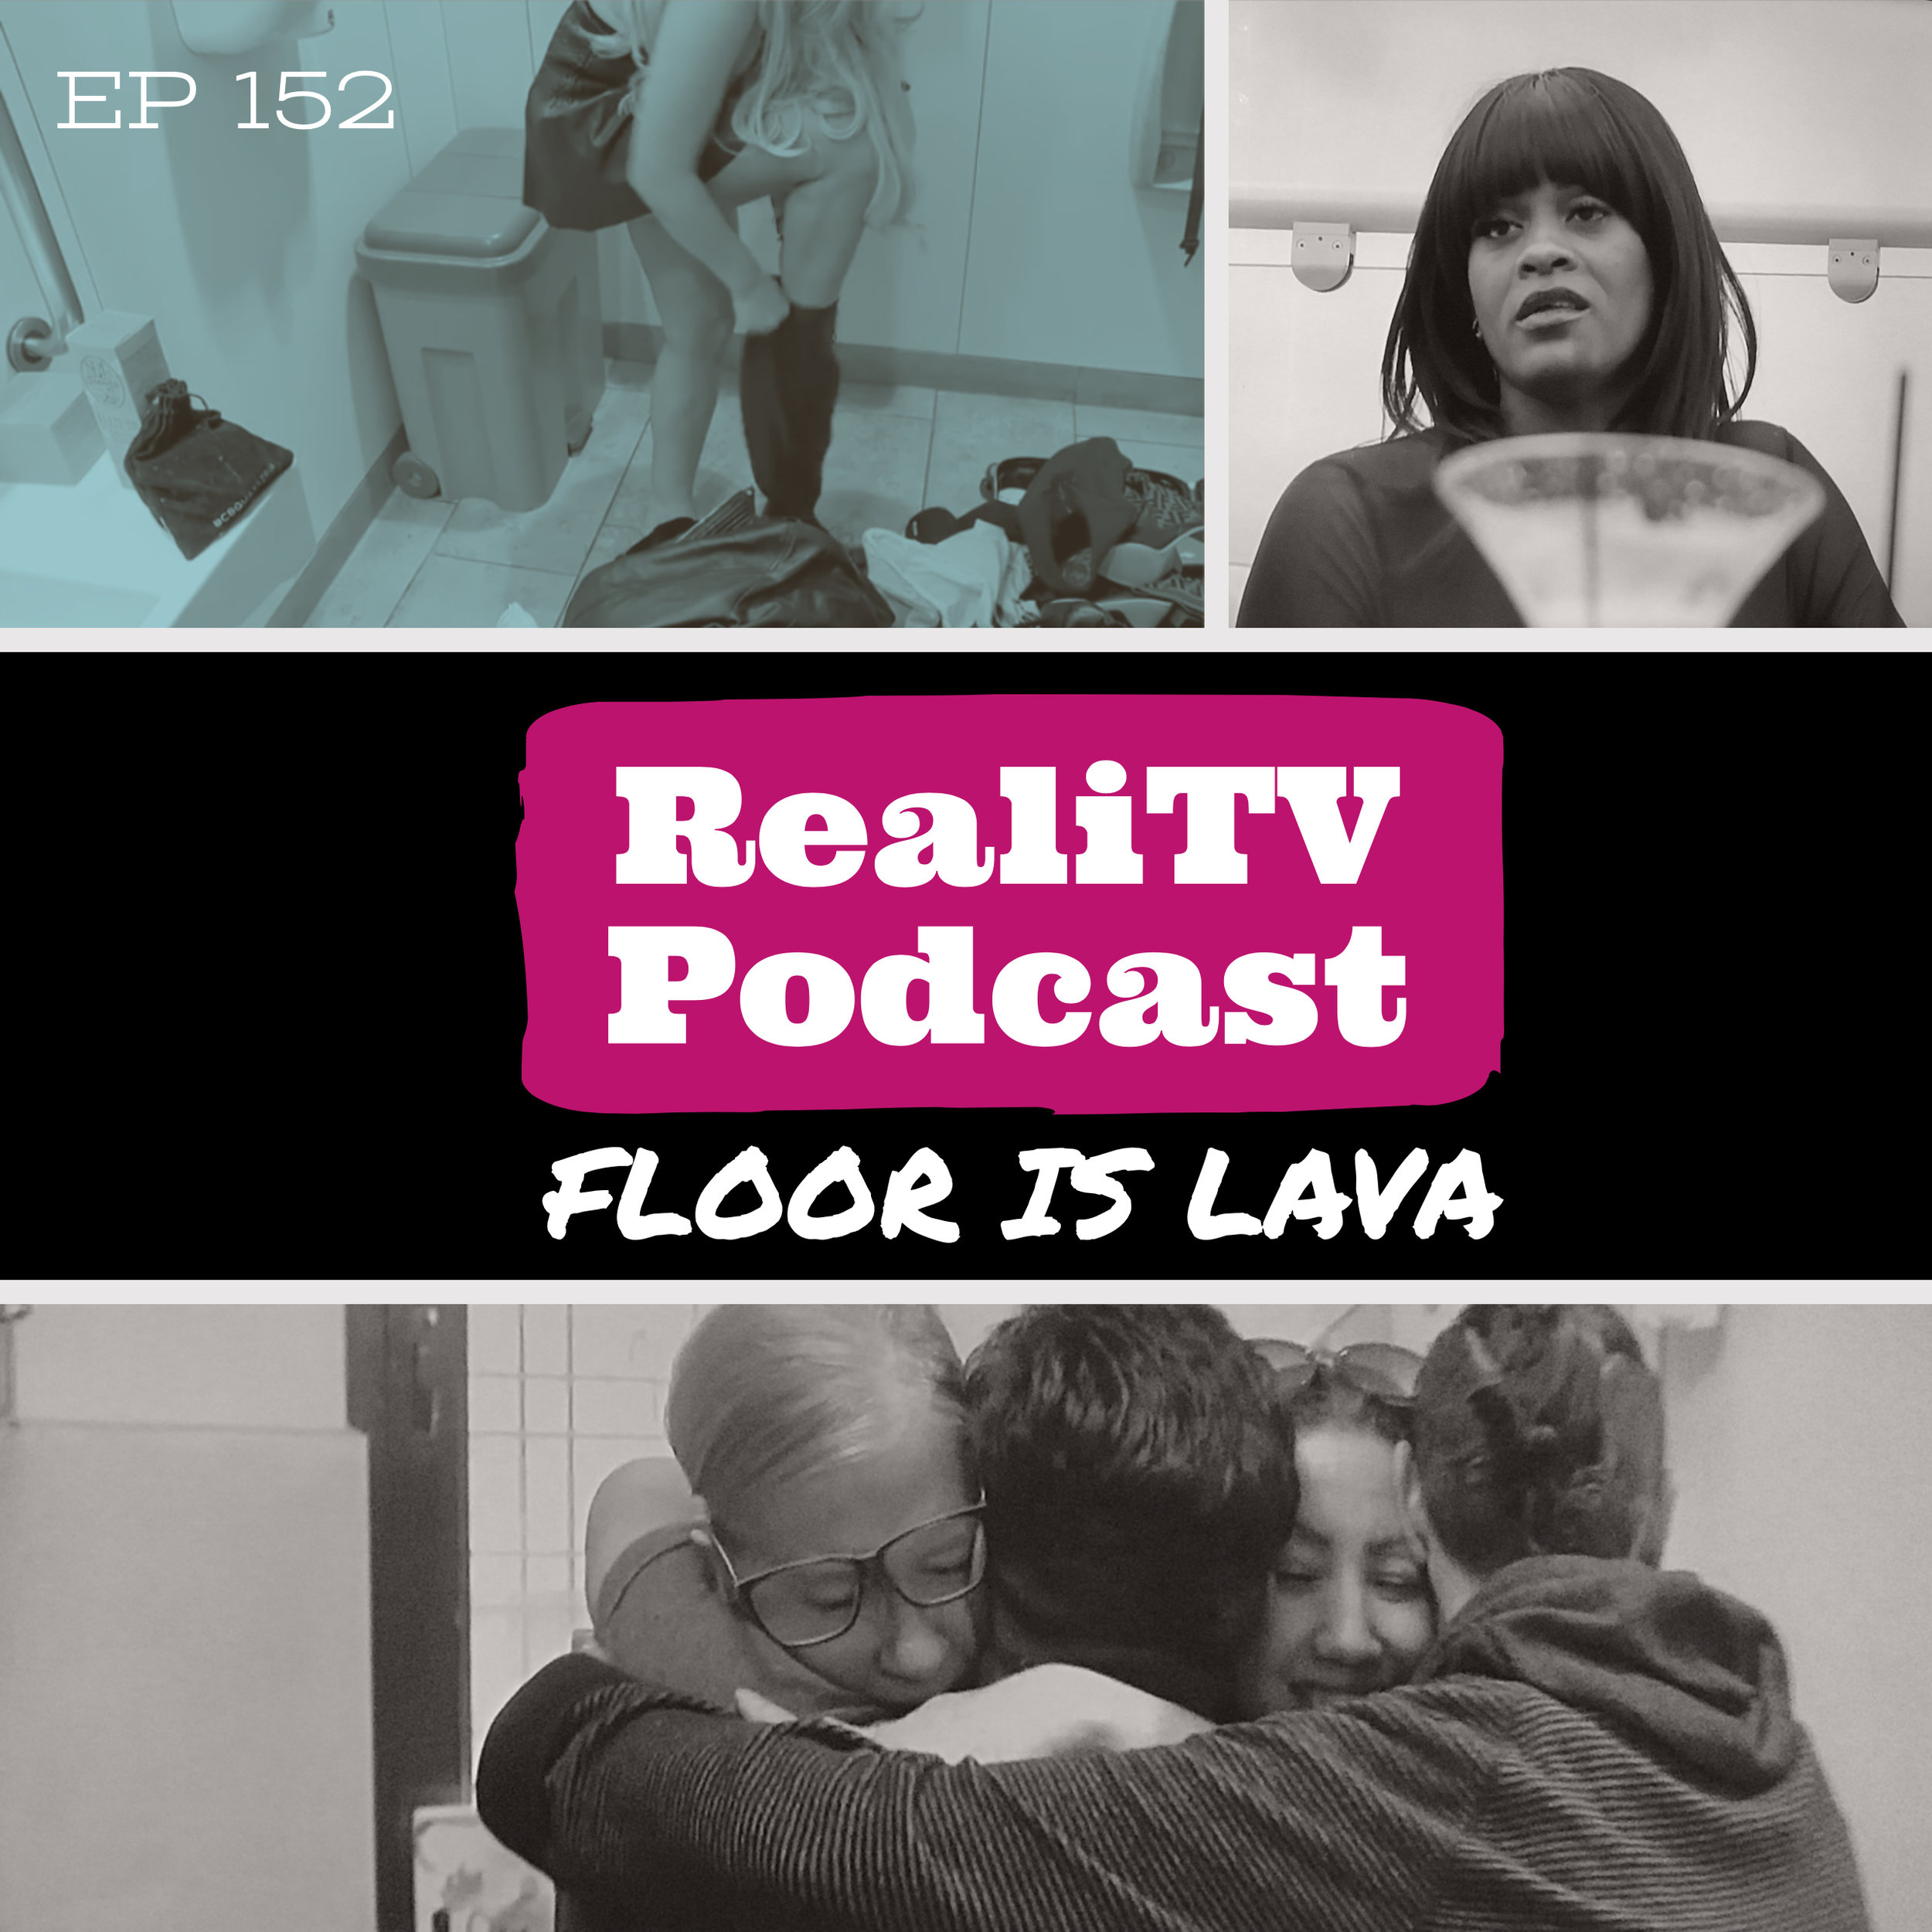 Episode 152: Floor is Lava - Current obsessions? Netflix's Mindhunter, 60 Days in Narcoland, and being that asshole who's still talking about Hamilton. Of course we have to talk about 90 Day Fiance Before the 90 Days because how can I not talk about DARCEY CONTRACTING EBOLA, SYPHILLIS, STREP THROAT and ASTHMA in that bathroom. I hate humans.A new season of Love After Lockup was the breath of fresh that I needed after that season with the Clints. New felons, new families, and new lip fillers to snark on is truly a gift from the reality heavens. Rounding things out, 90 Day Fiance The Other Way which threw us a plot twist I was not prepared for. SUBSCRIBE, SHARE & LEAVE A 5-STAR REVIEW!Modern Fertility allows YOU to be in control of your health decisions. Get $20 off this incredible new kit at www.modernfertility.com/realitv